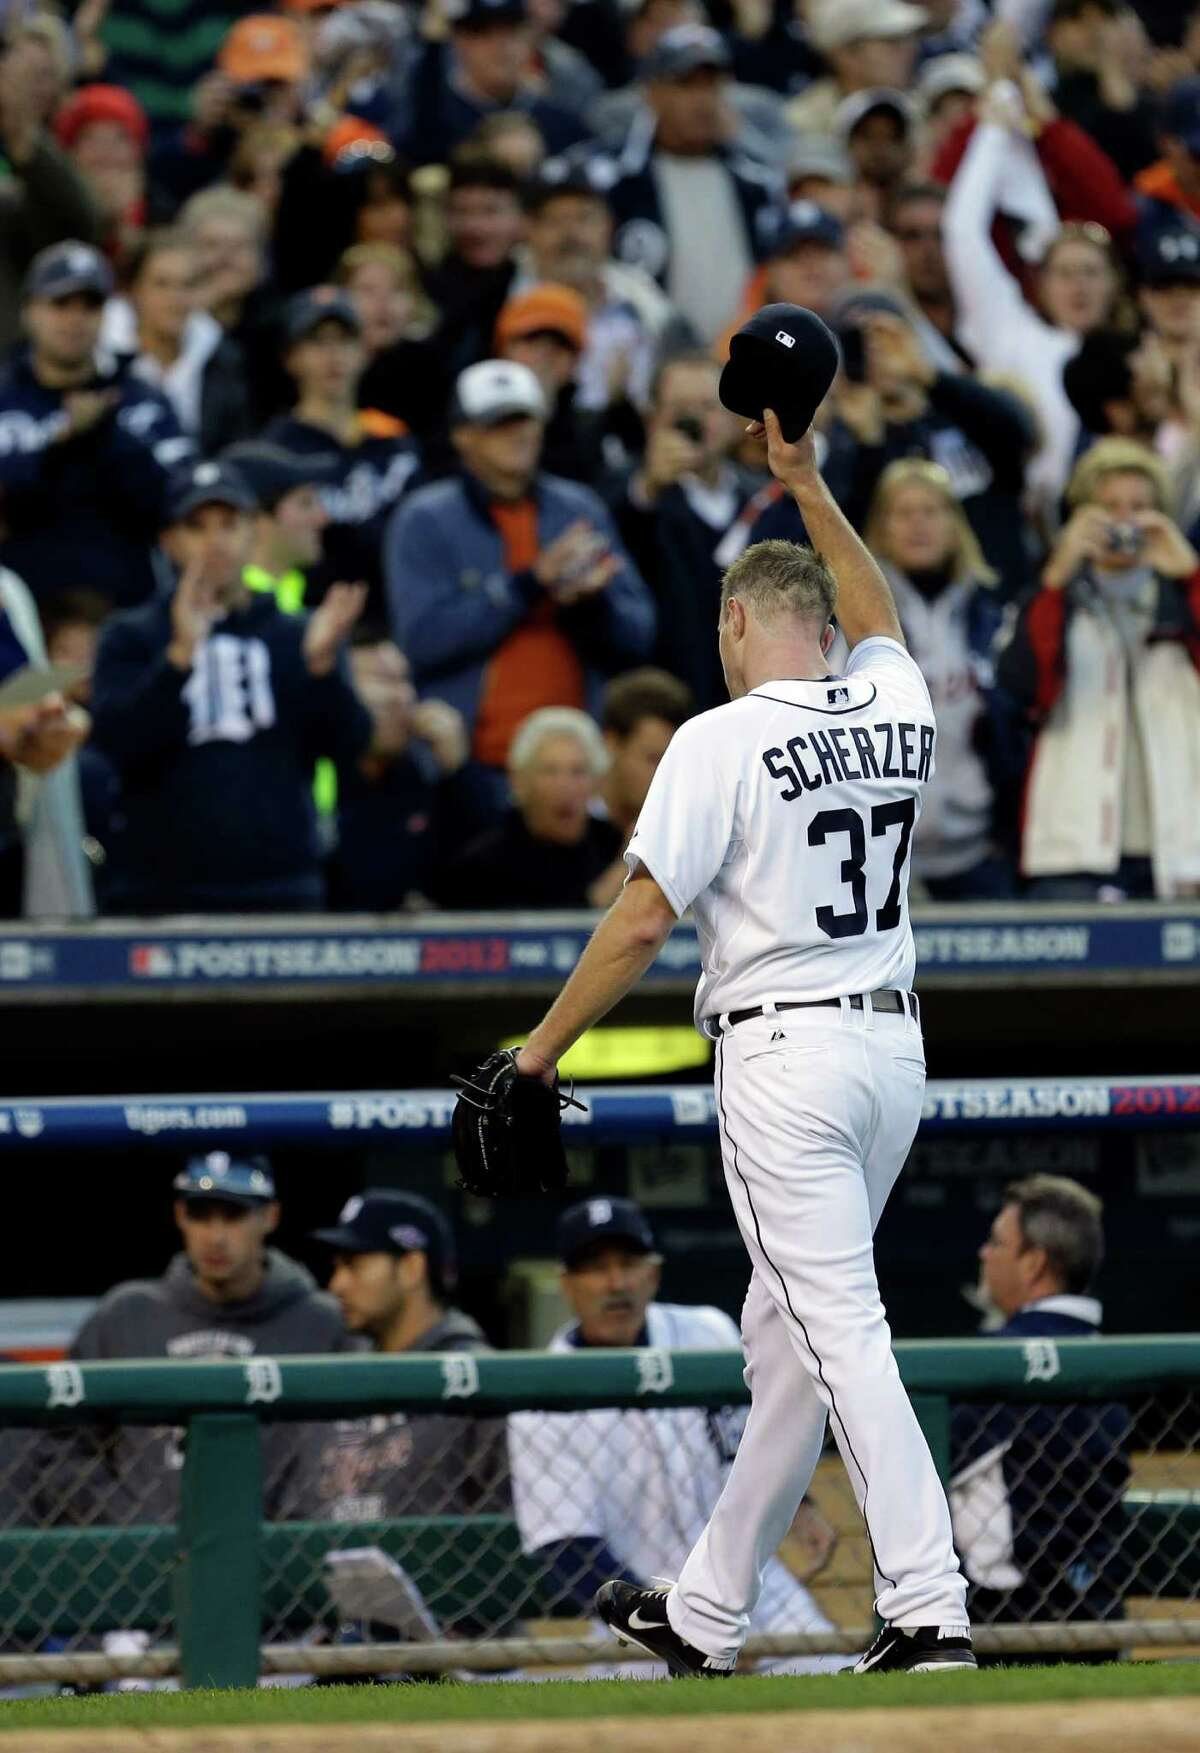 Detroit Tigers' Max Scherzer salutes after being taken out of the game in the sixth inning during Game 4 of the American League championship series against the New York Yankees Thursday, Oct. 18, 2012, in Detroit.